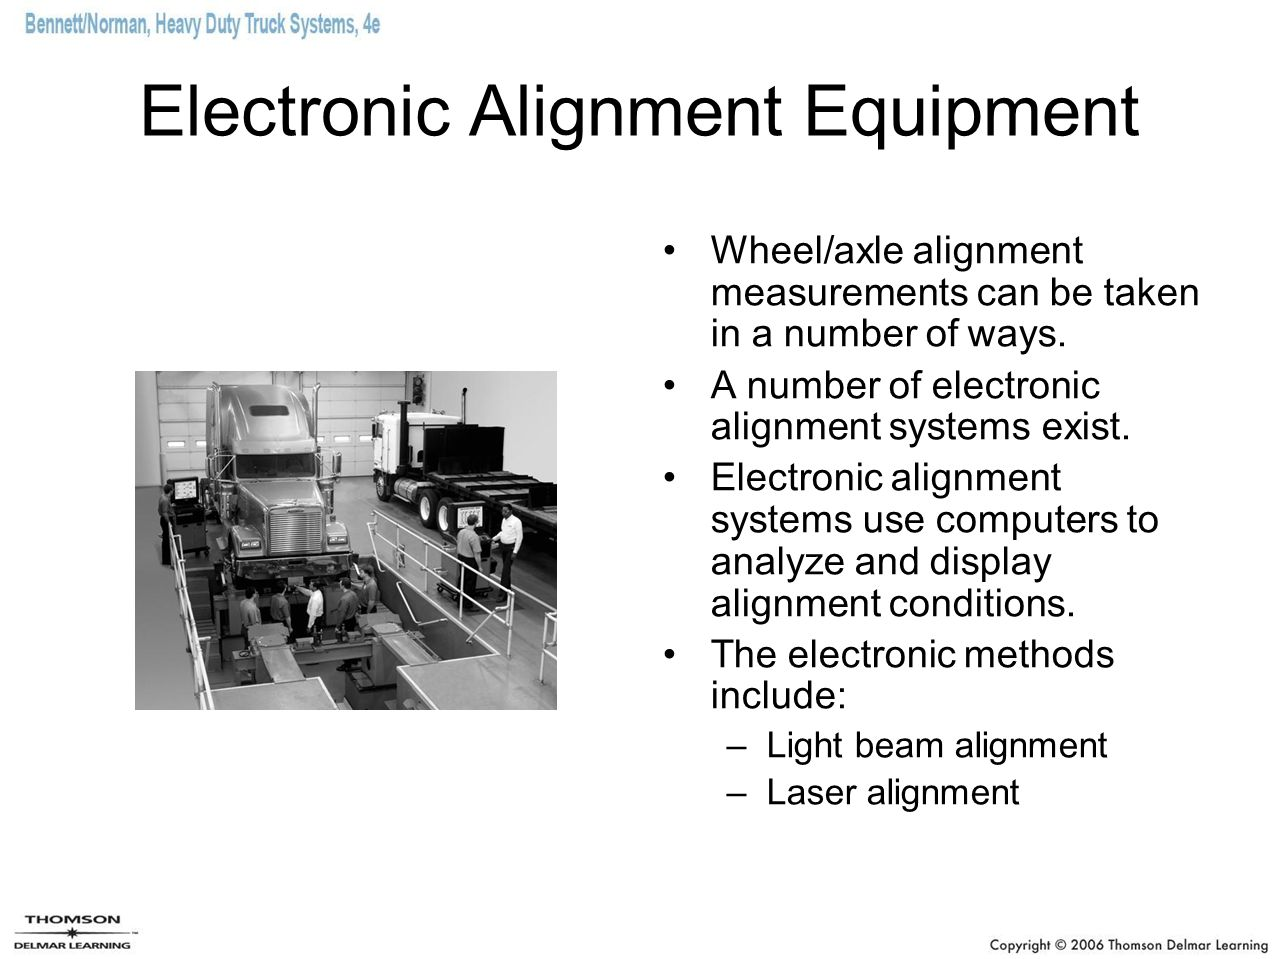 Electronic Alignment Equipment